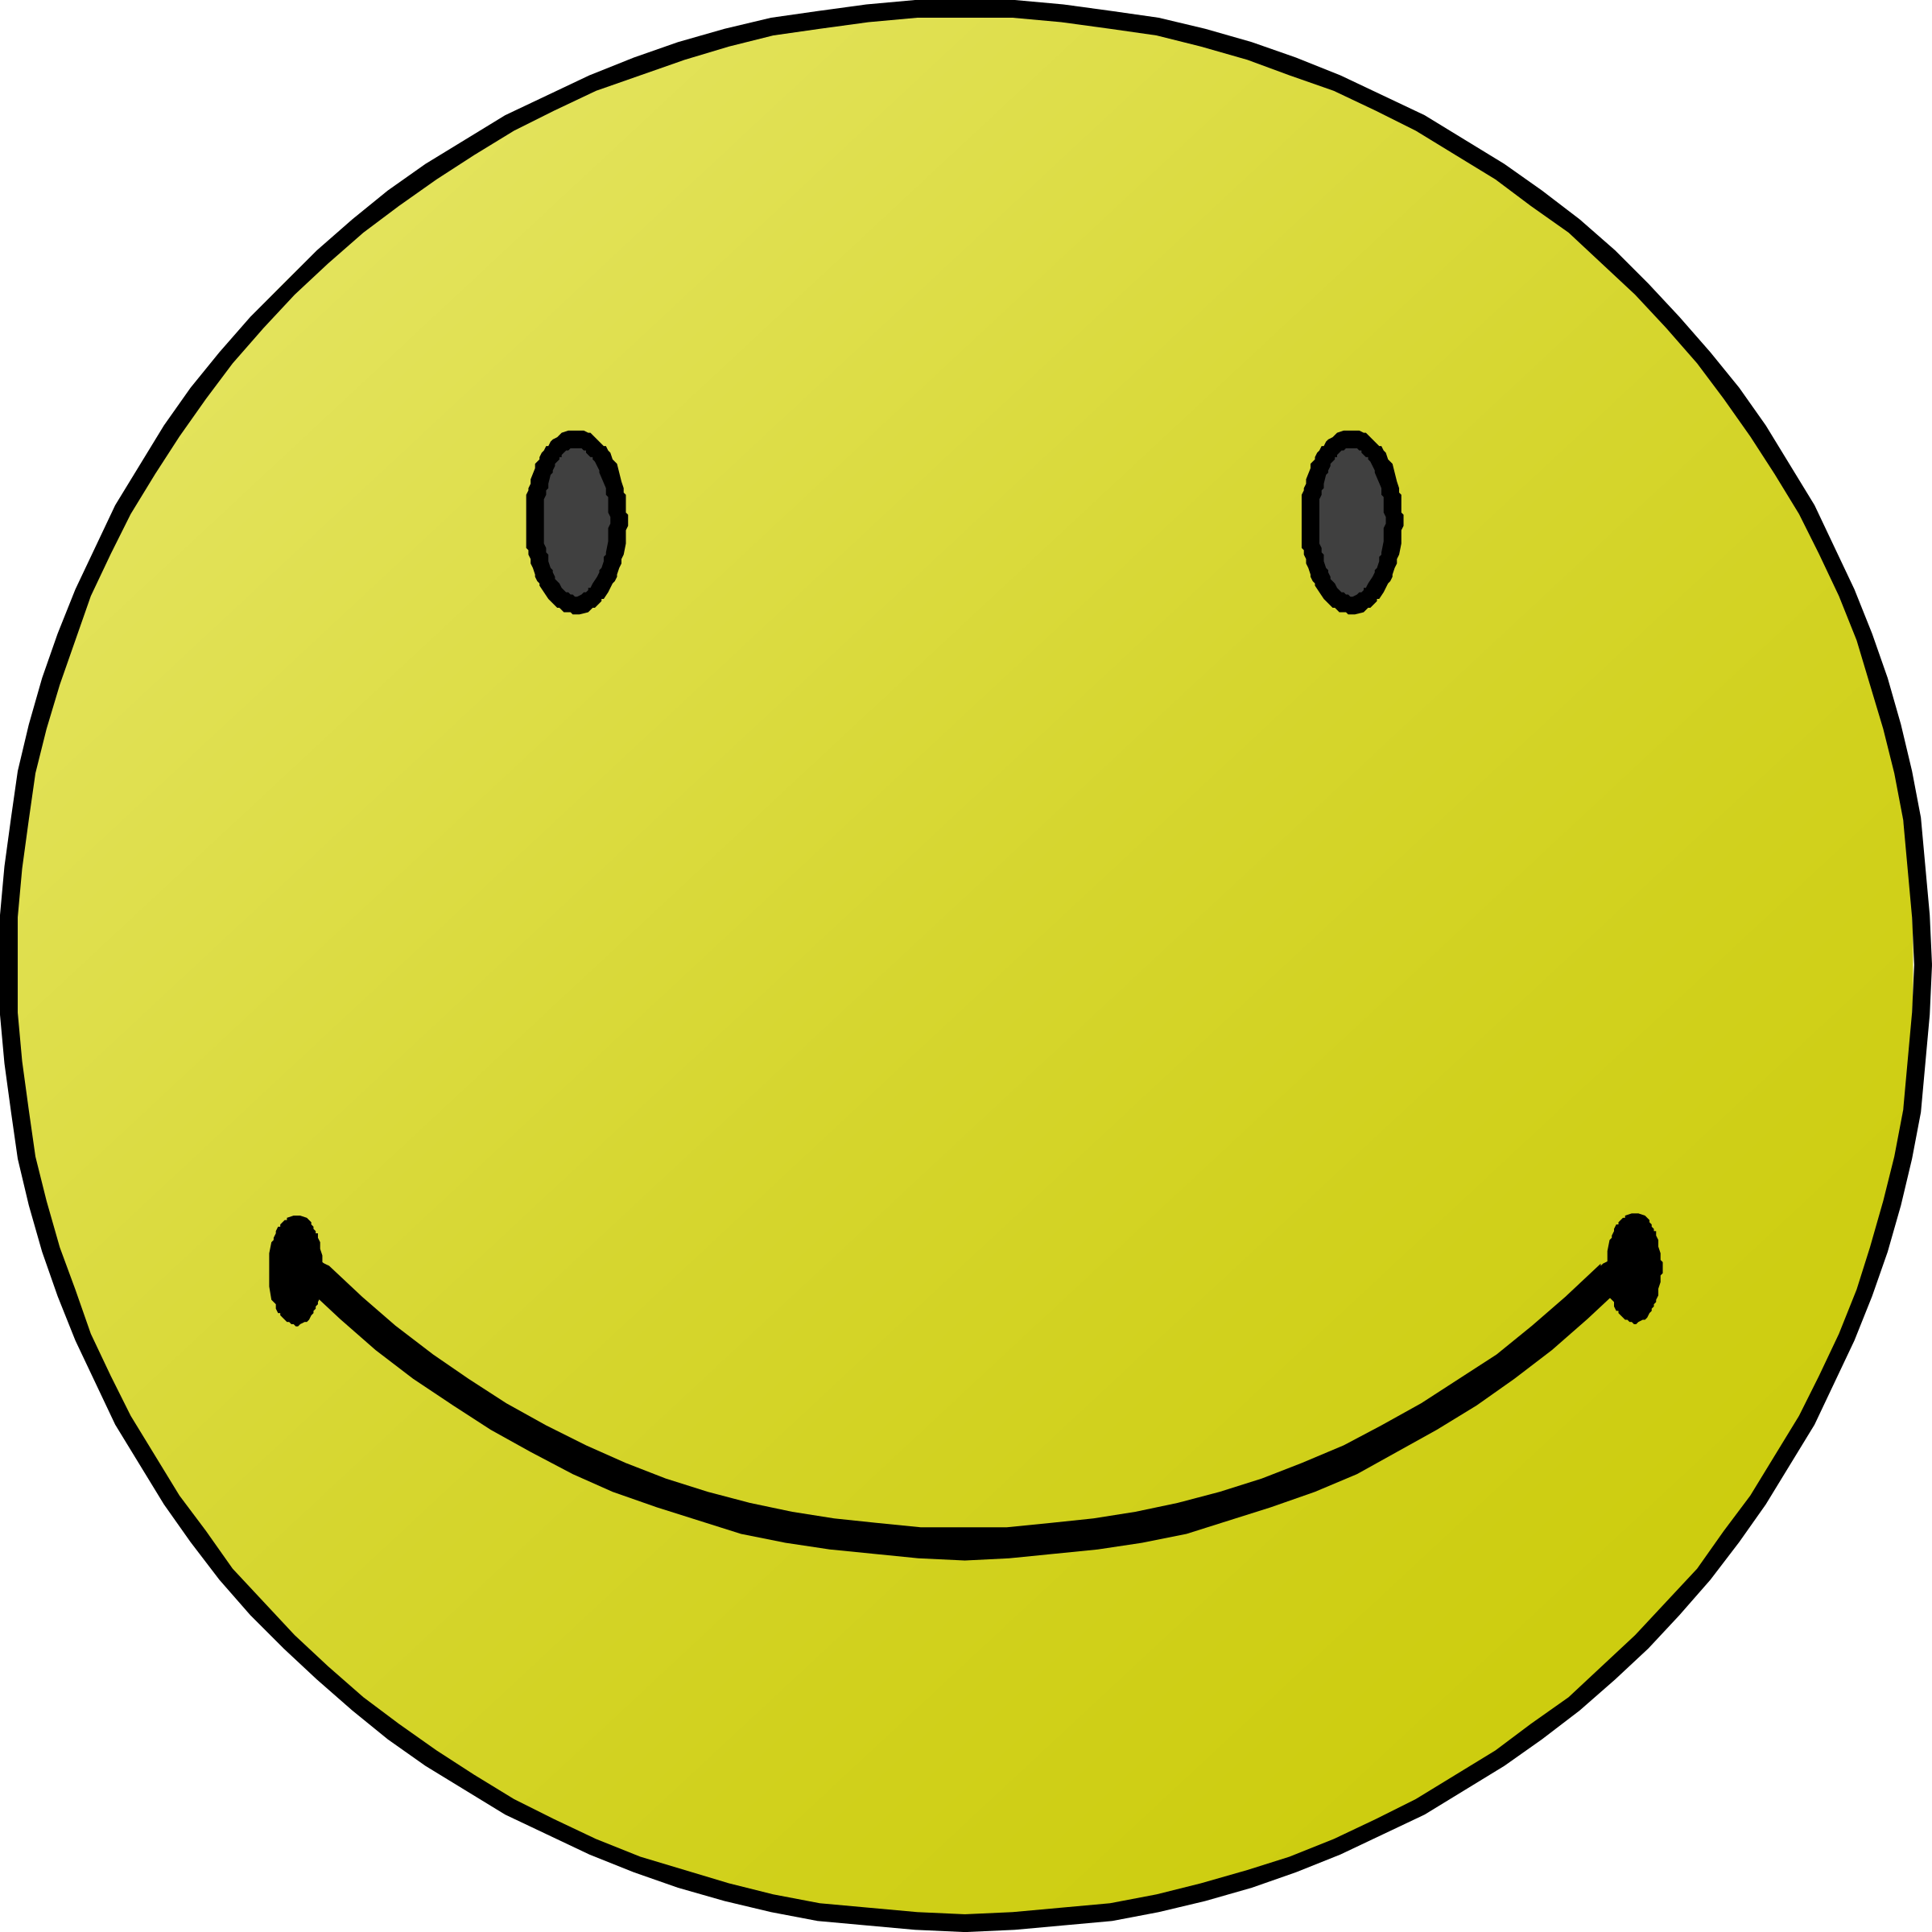 Smiley face sun clipart banner royalty free download Clipart - Happy Day banner royalty free download